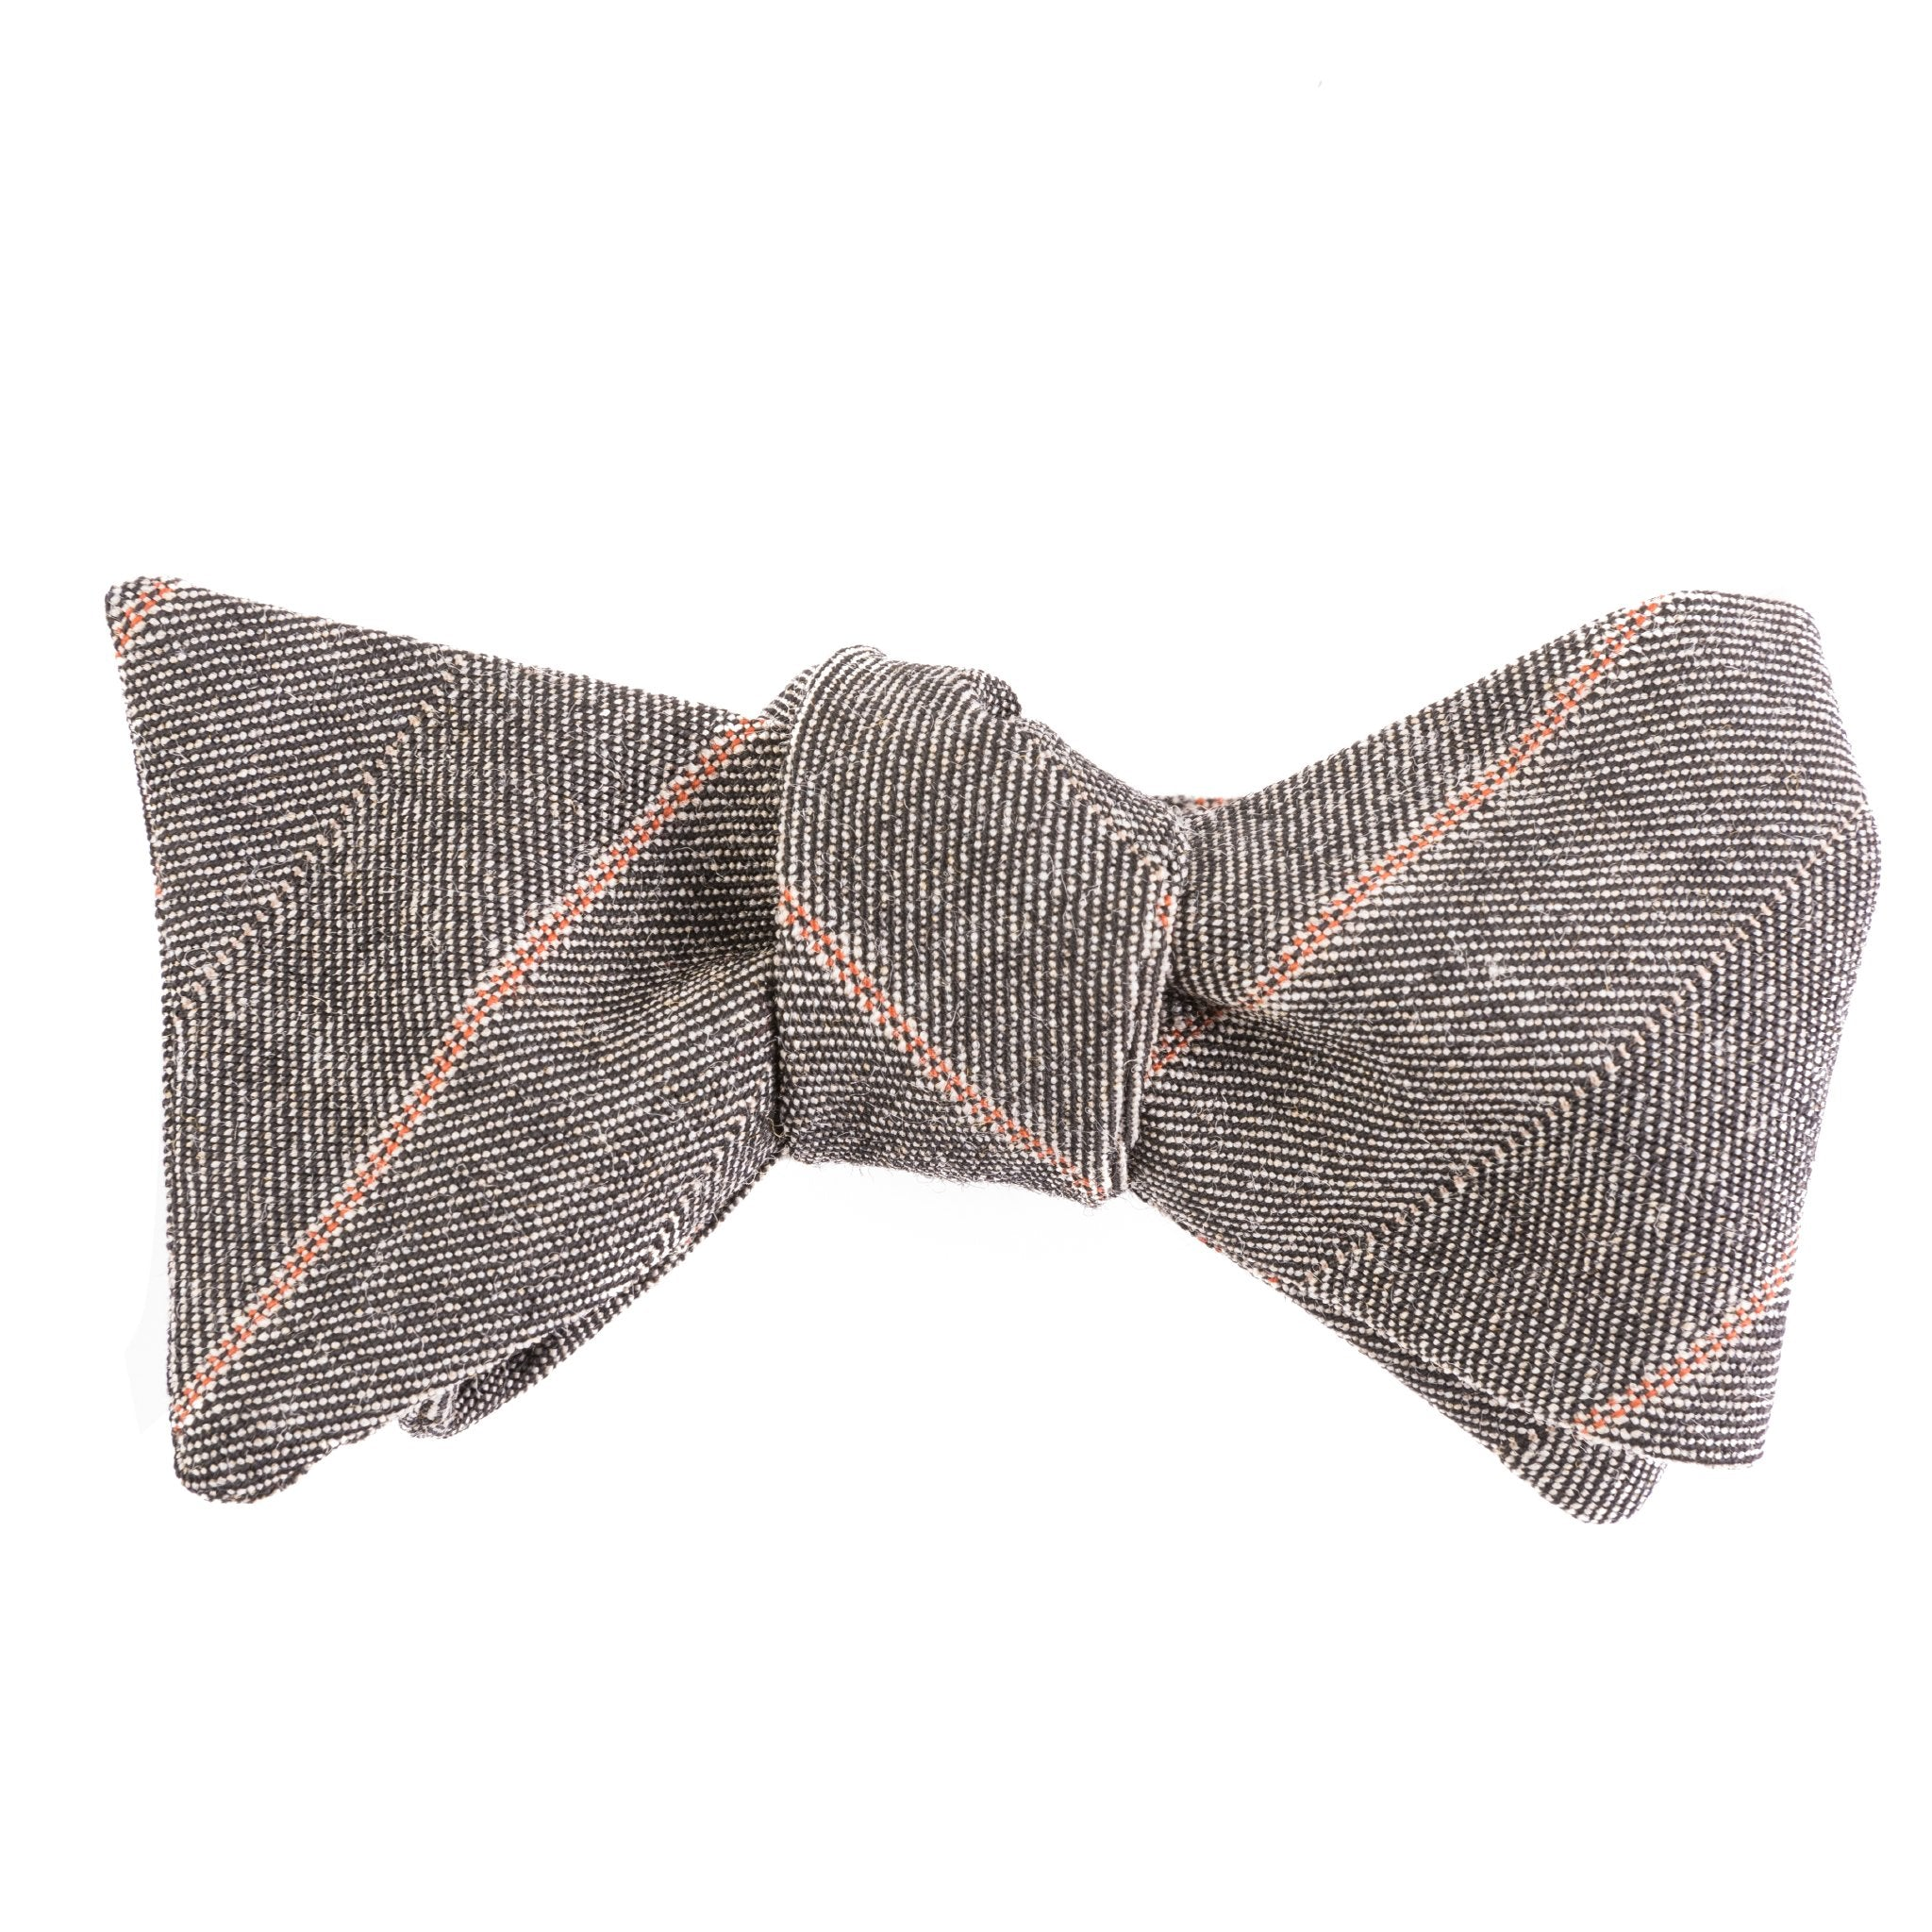 Mill City Fineries Clay & Stone Micro Herringbone Bow Tie